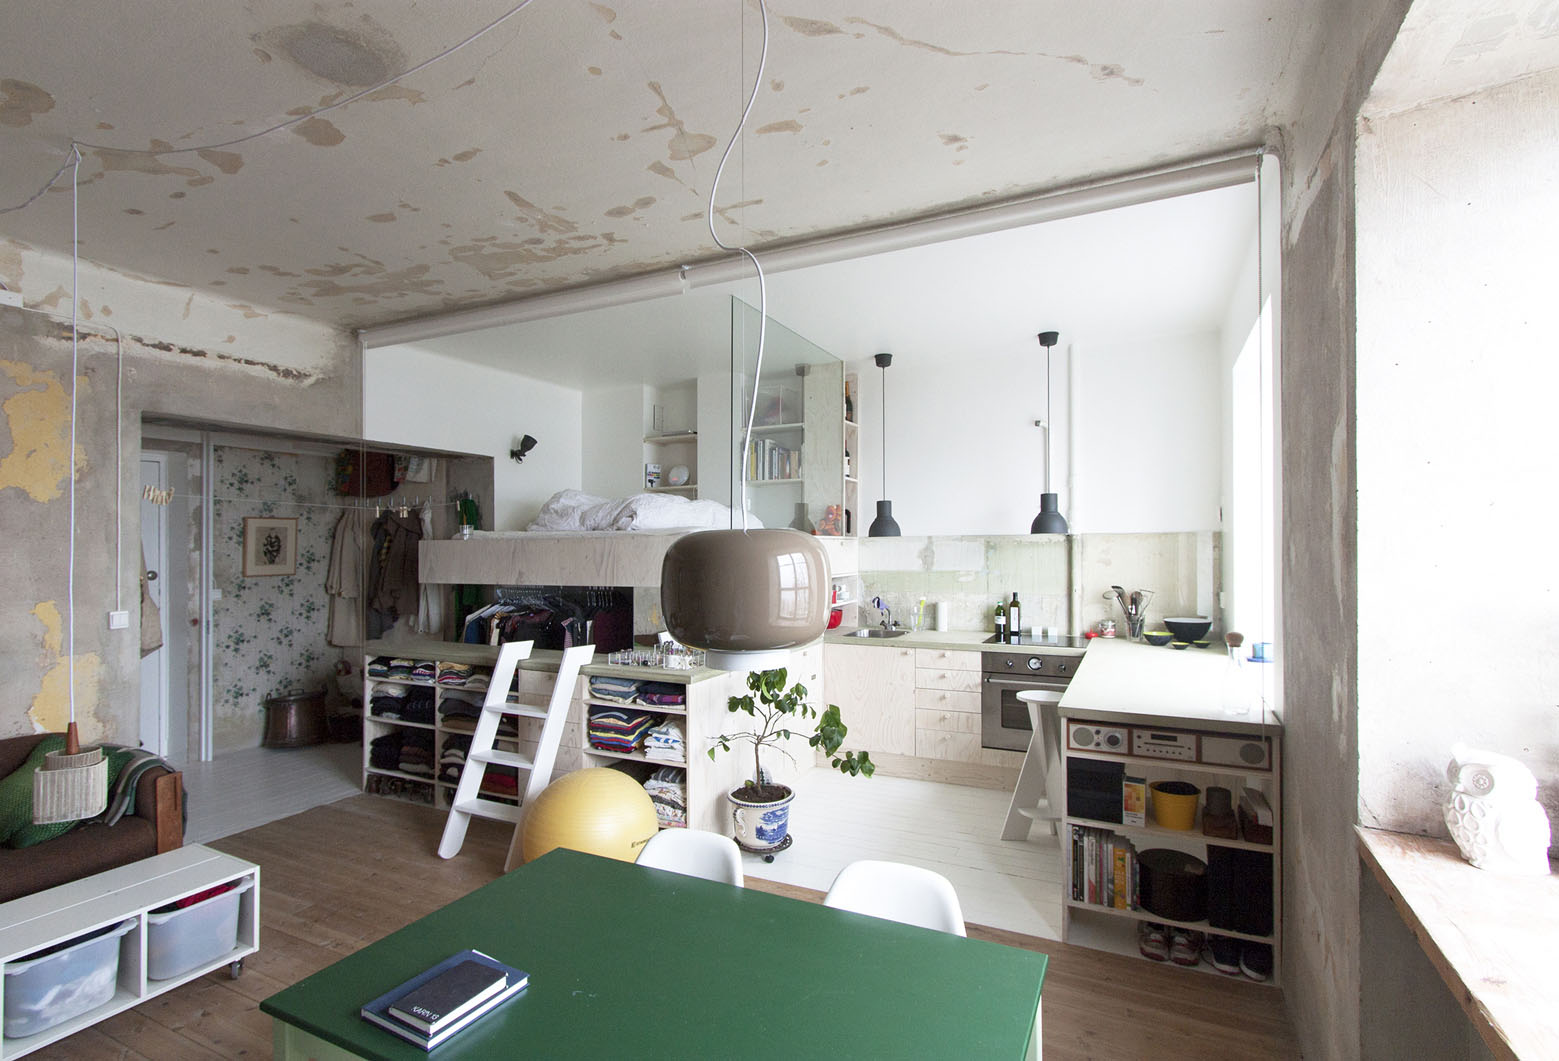 Studio Apartment Renovation inexpensive studio apartment renovation with all-in-one kitchen